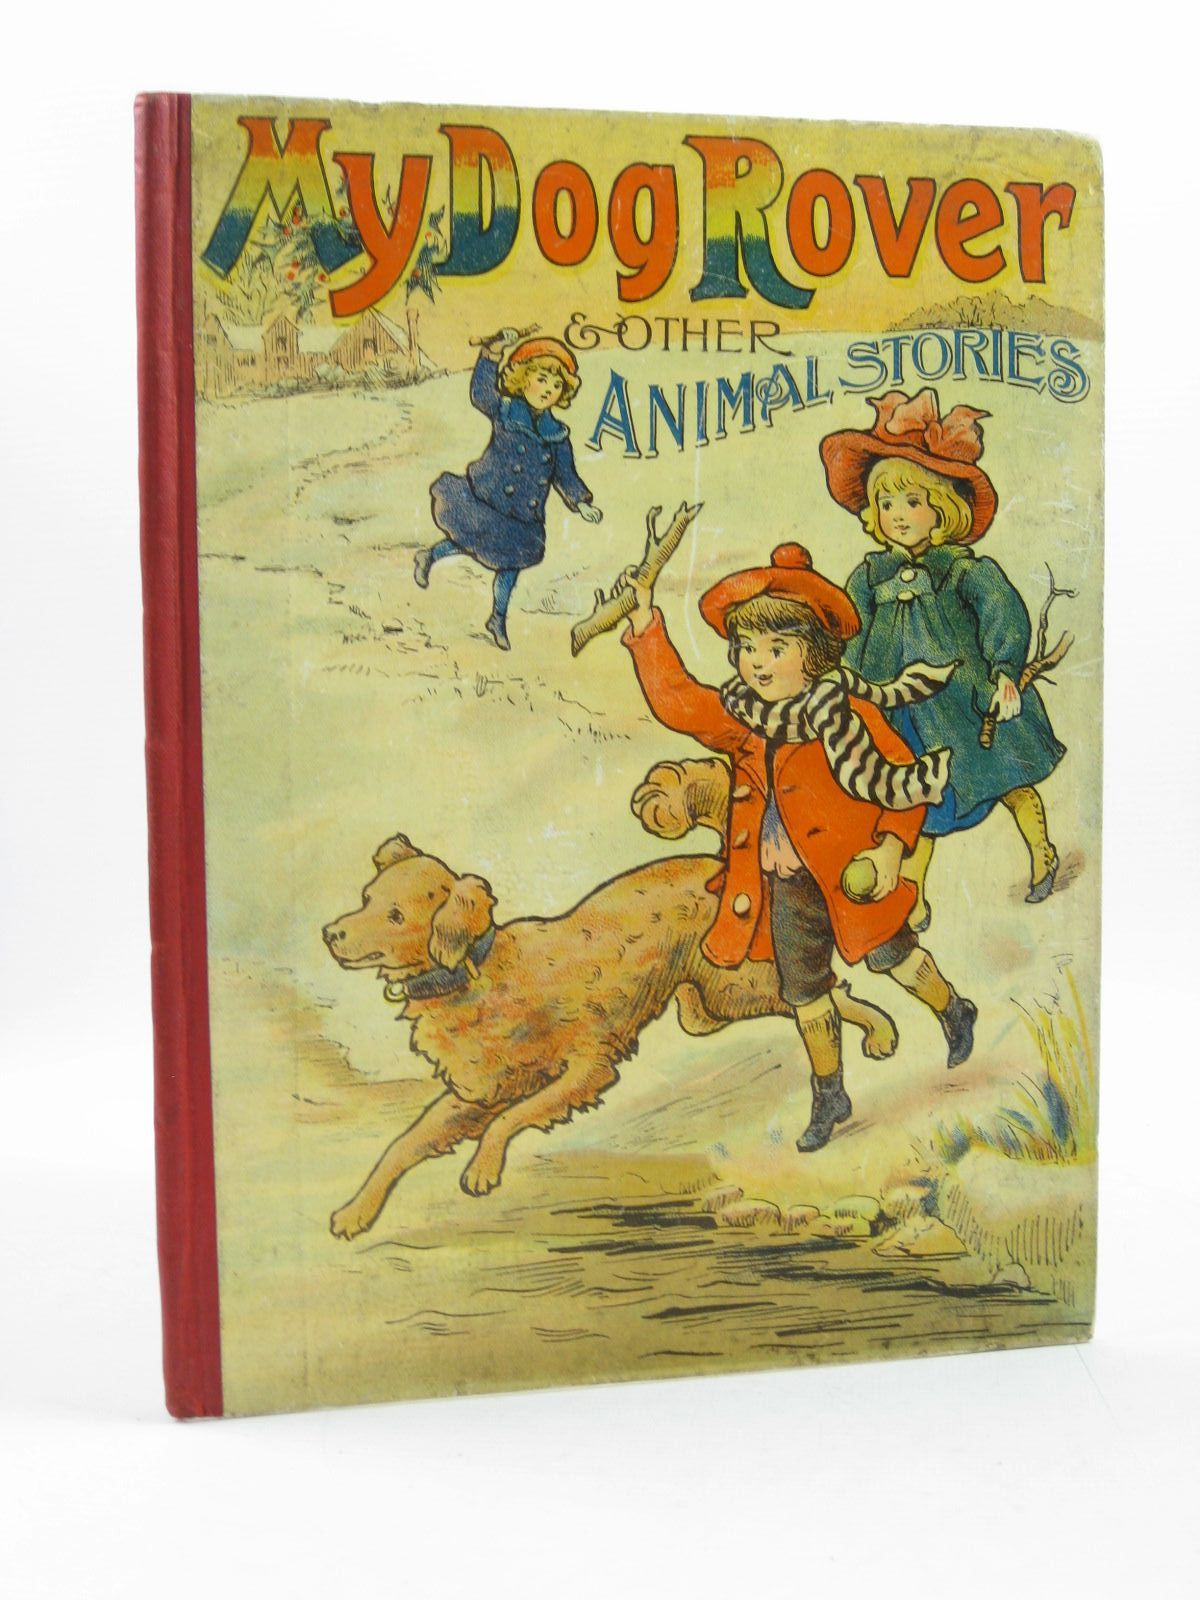 Photo of MY DOG ROVER AND OTHER ANIMAL STORIES illustrated by Wain, Louis et al., published by William Collins Sons & Co. Ltd. (STOCK CODE: 1313846)  for sale by Stella & Rose's Books